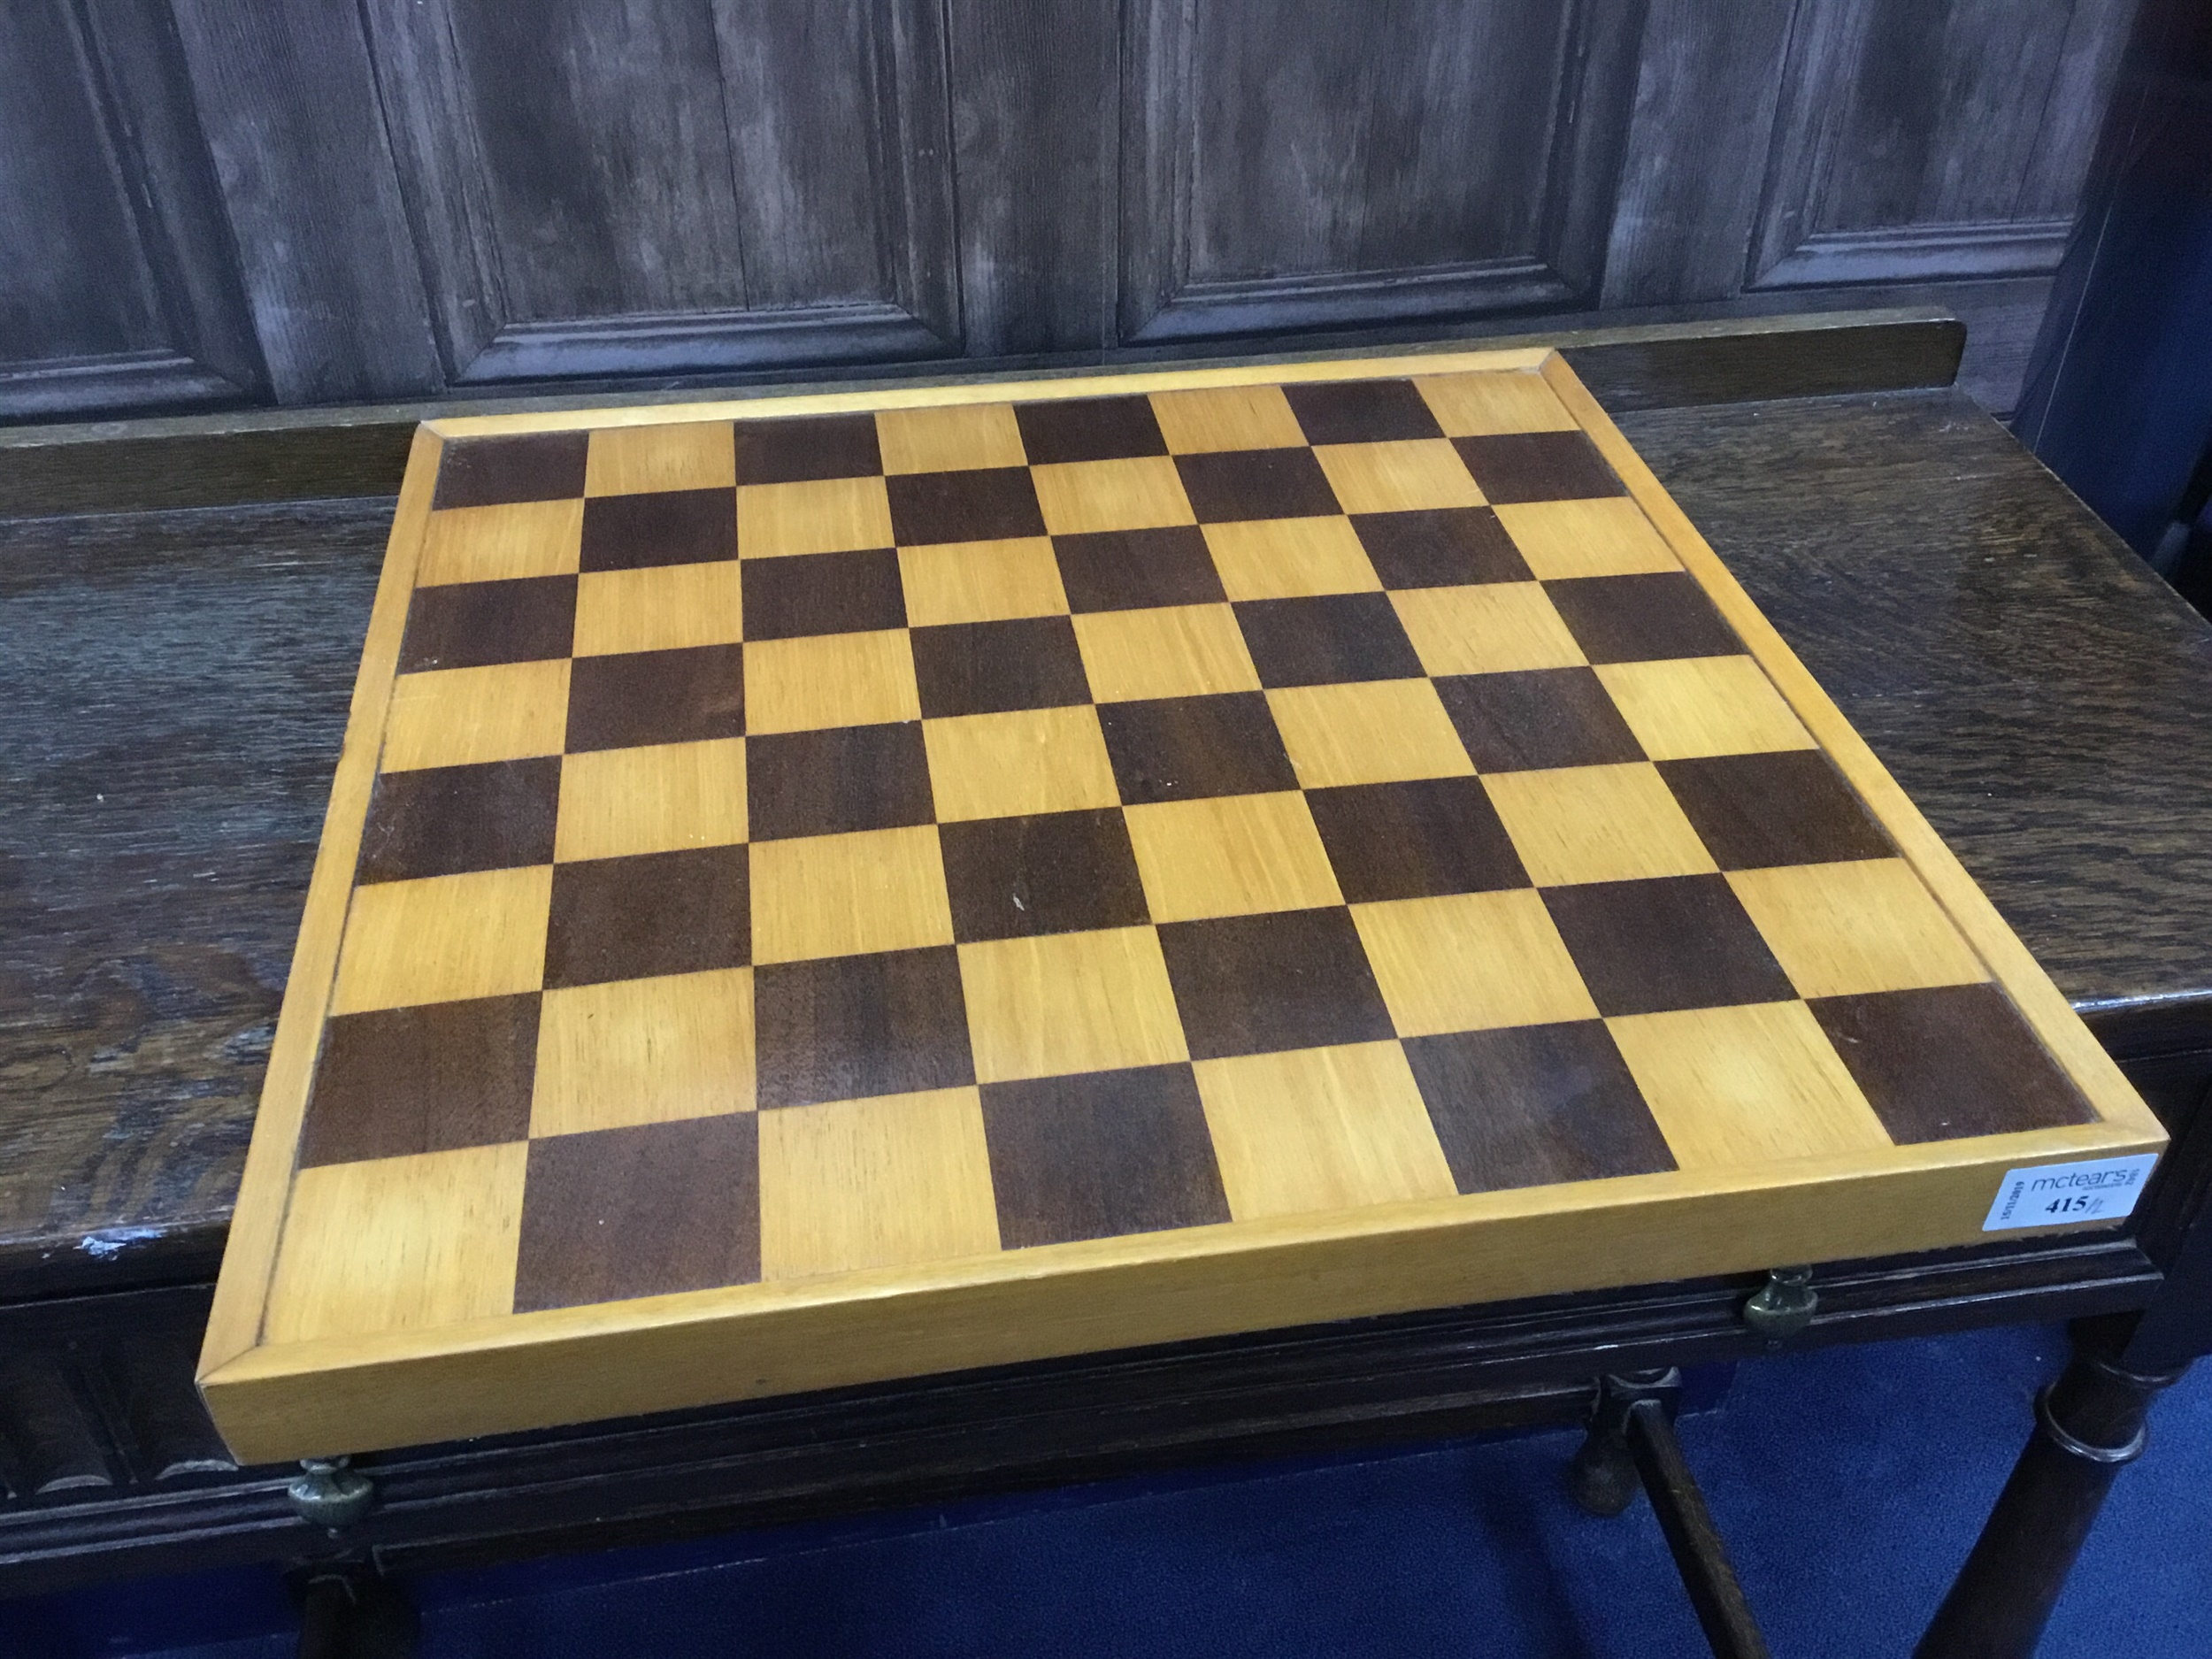 Lot 415 - A LOT OF TWO STAINED WOOD CHESS BOARDS